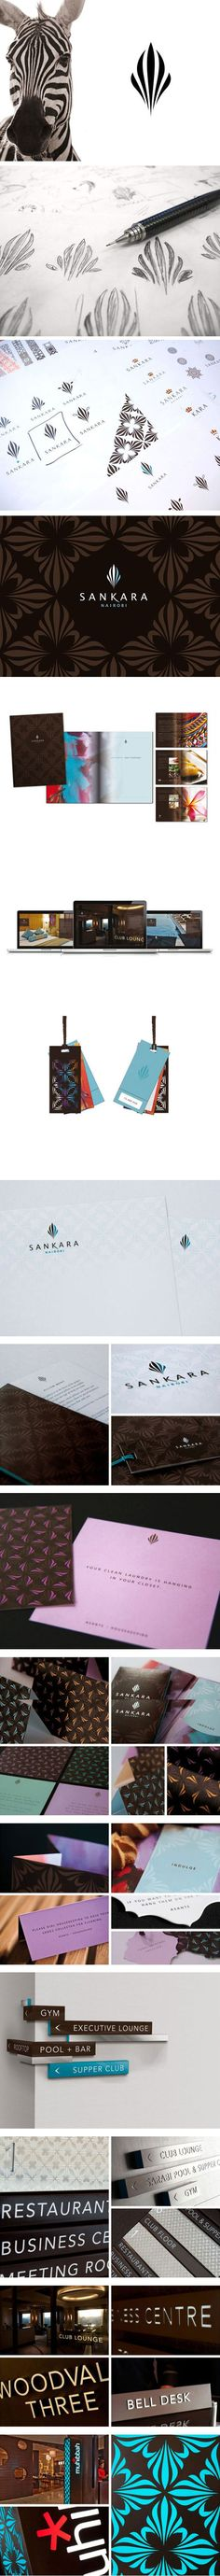 Sankara Hotel / Branding / Identity / Logo / Process / sketch / inspiration / zebra / stripes / pattern / stationery / business card / signs